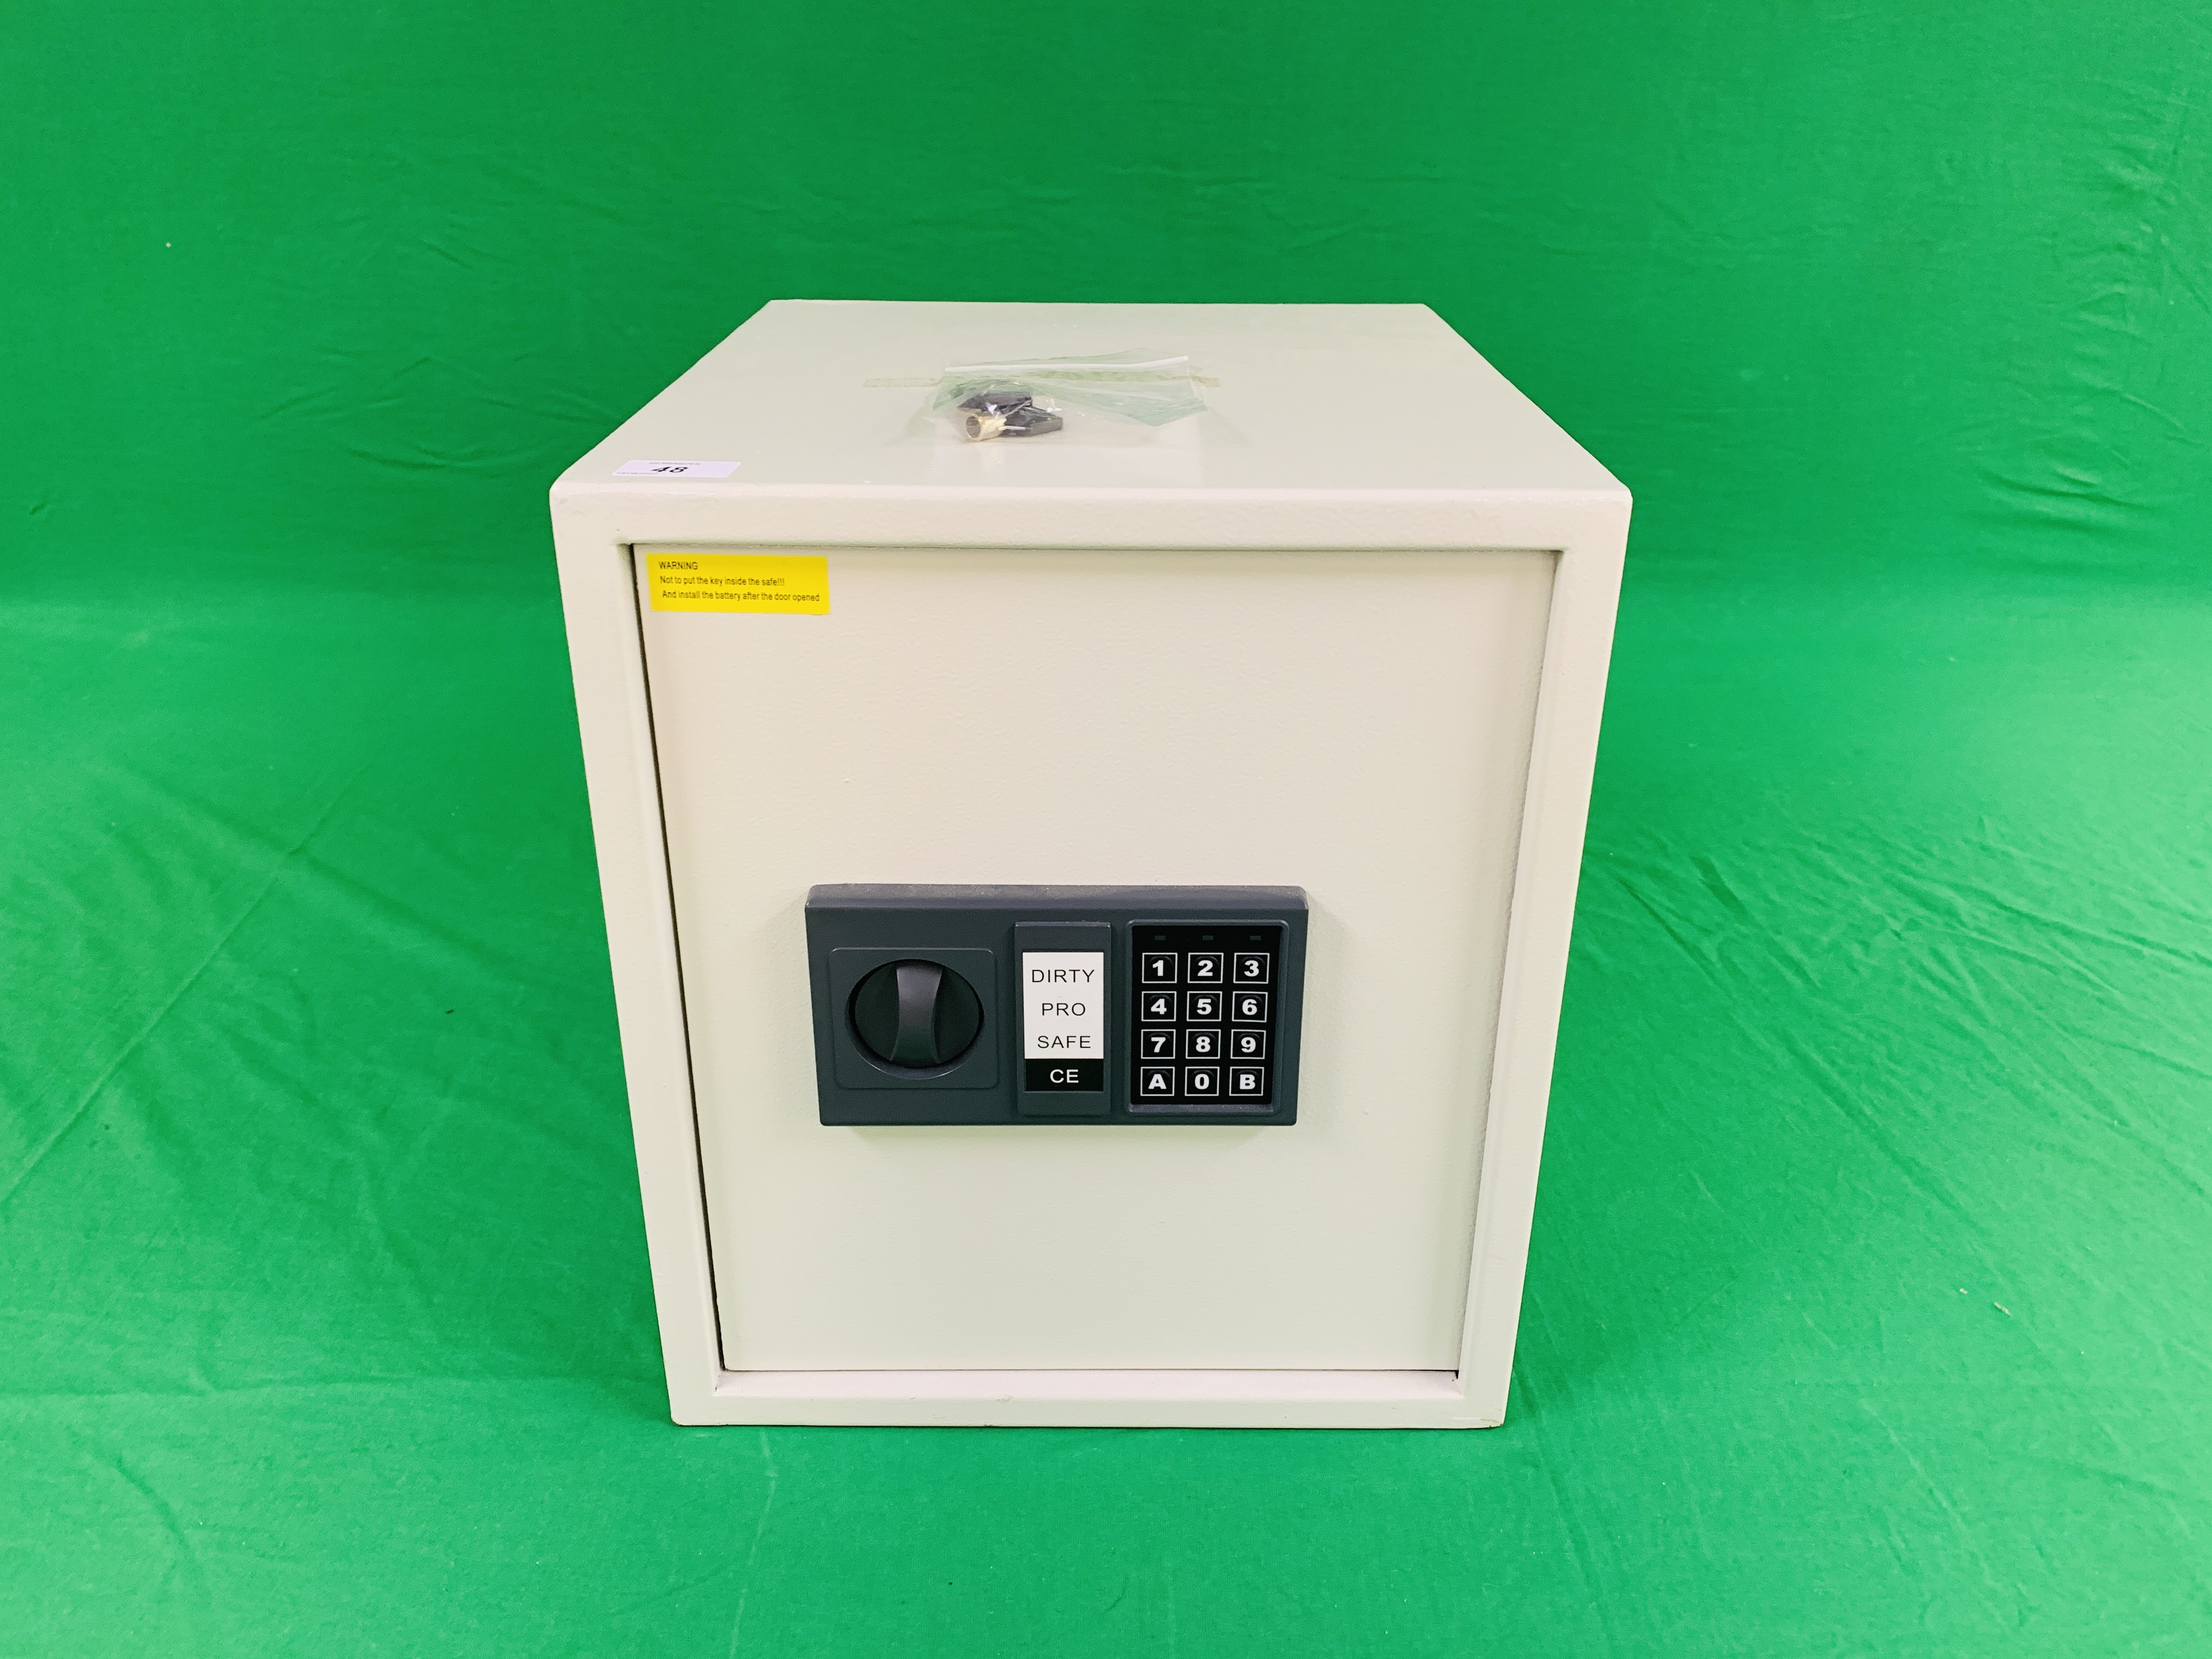 DIRTY PRO SAFE CE ELECTRIC COMBINATION SAFE COMPLETE WITH INSTRUCTIONS ALONG WITH FOUR AS NEW AMTA